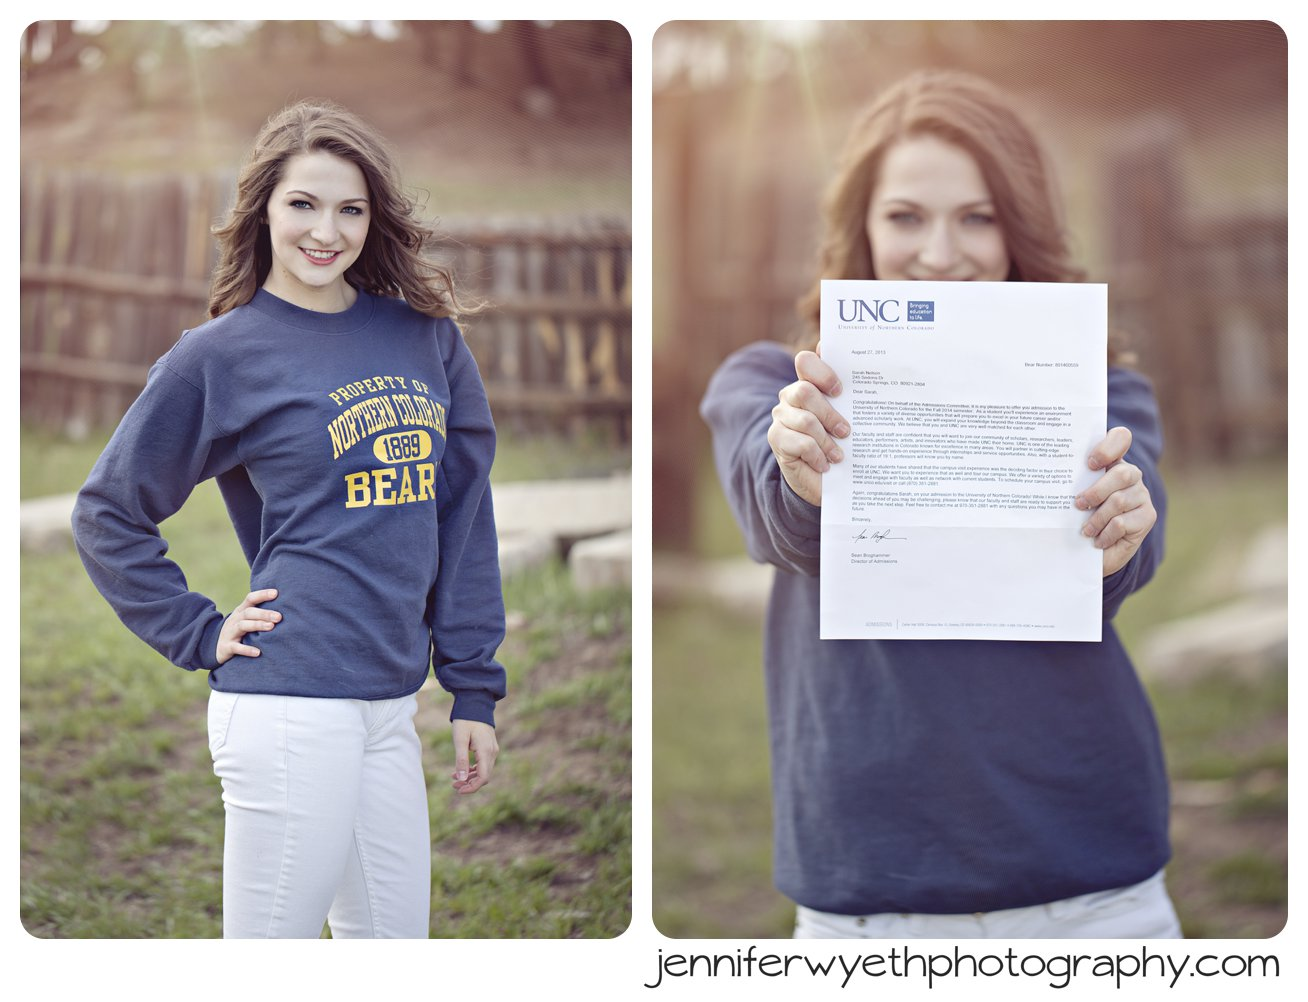 UNC bears sweatshirt and acceptance letter worn by incoming freshman